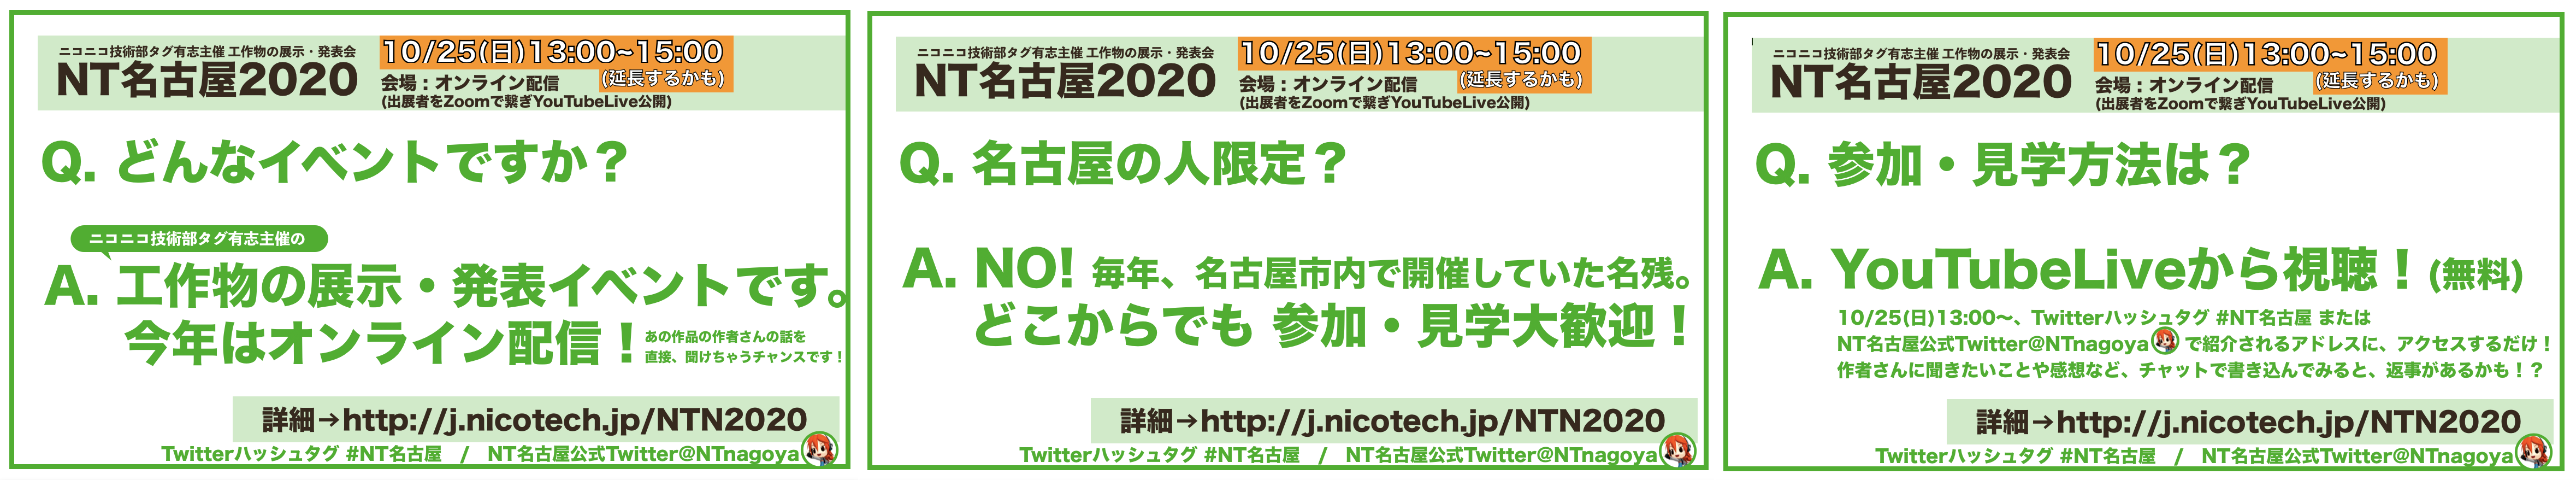 NT名古屋2020_1018_5.png